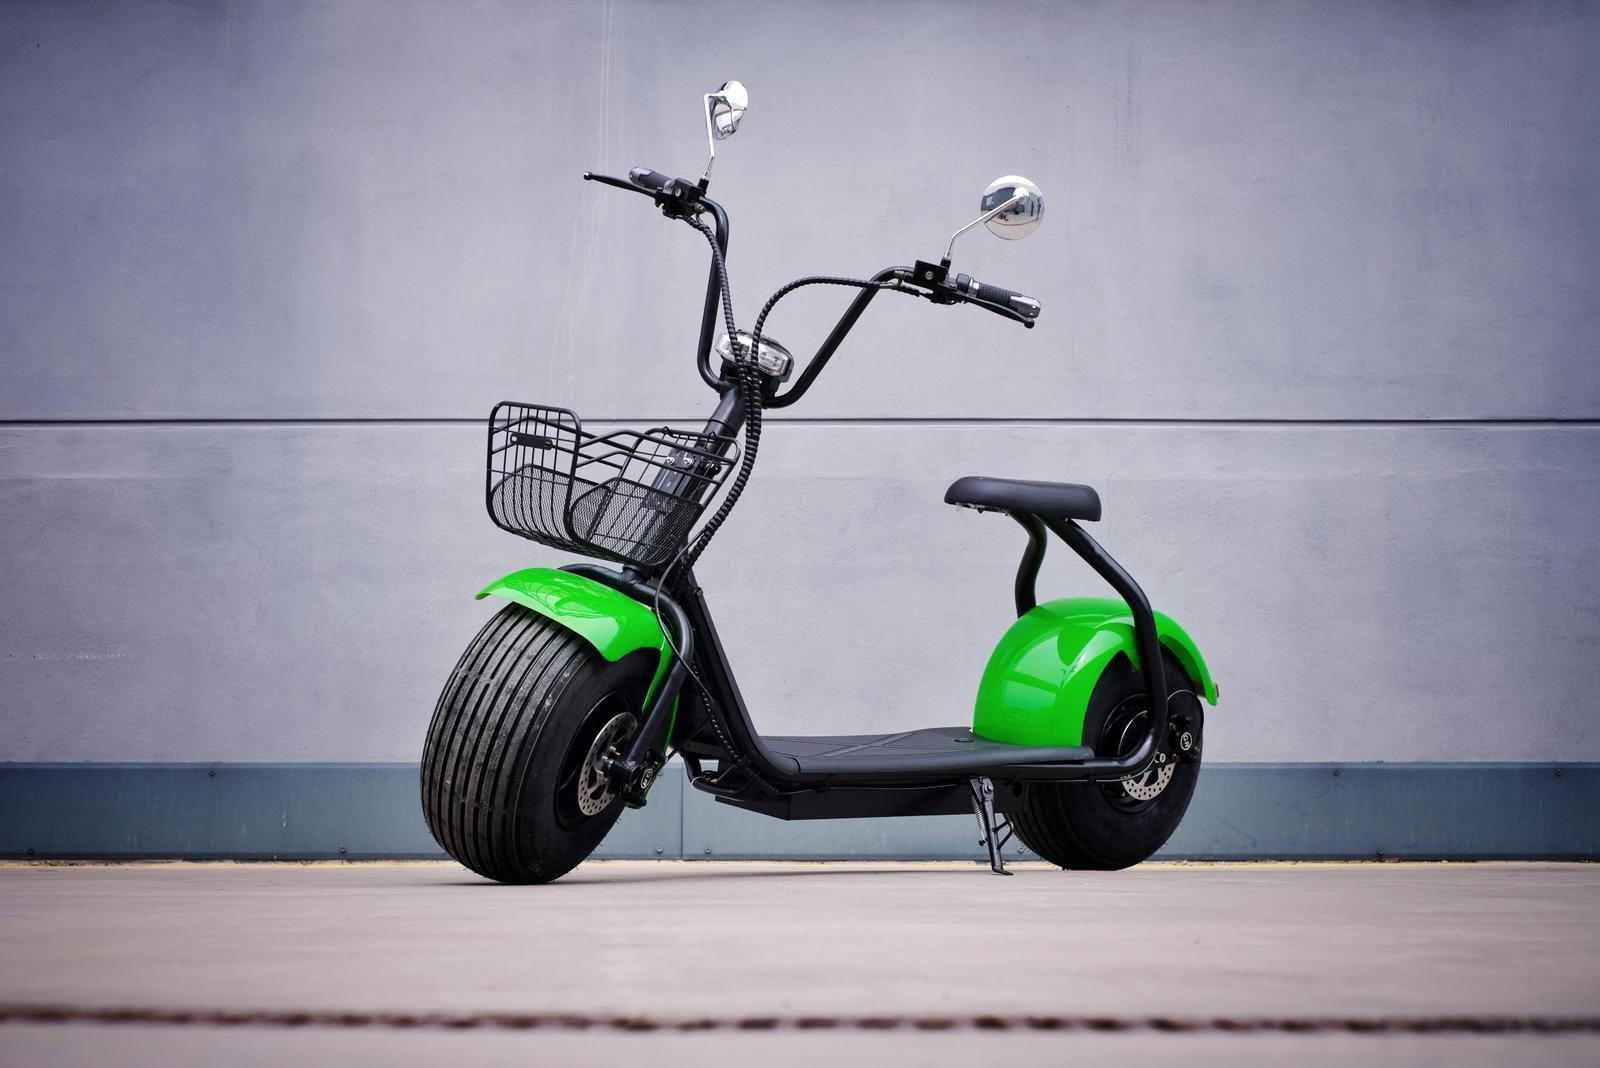 Scooterverdecesta ecomovingsports